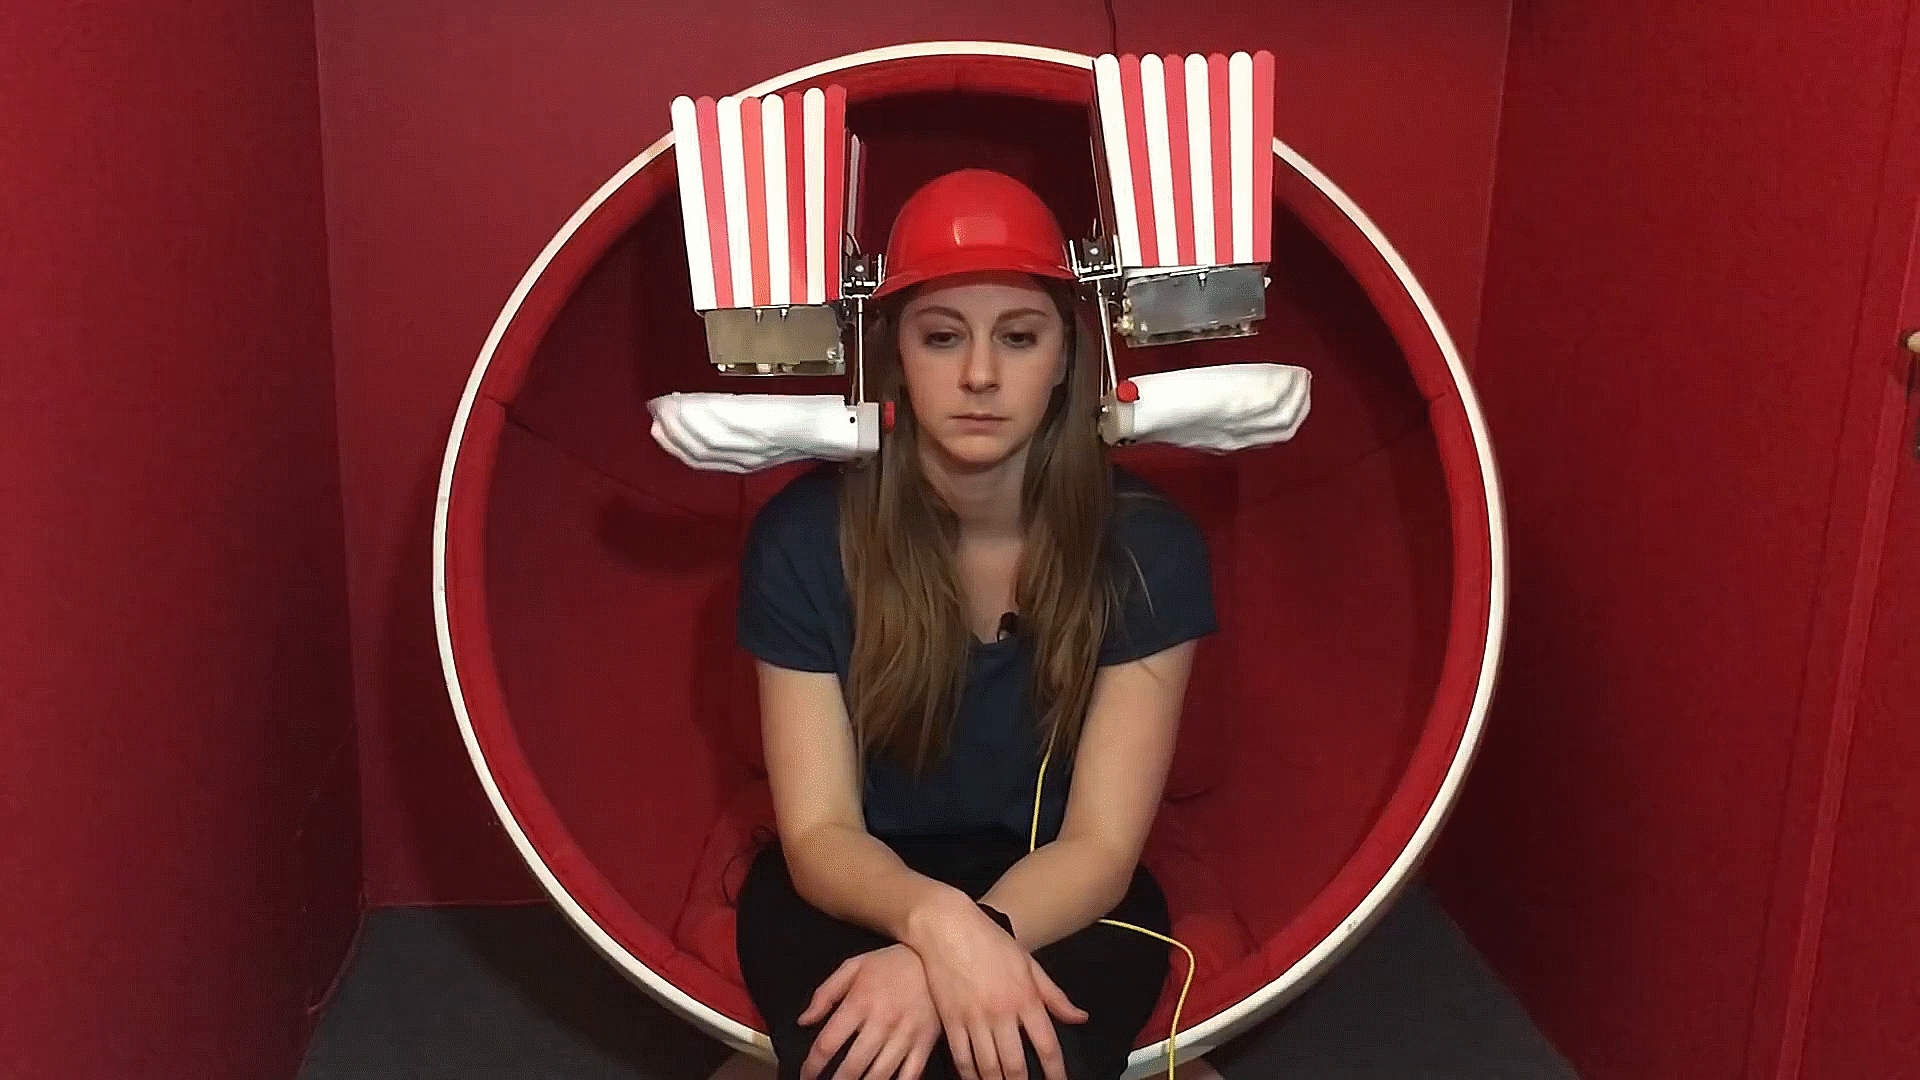 highqualitygifs, machine, popcorn, When you have too much time on your hands after a breakup GIFs